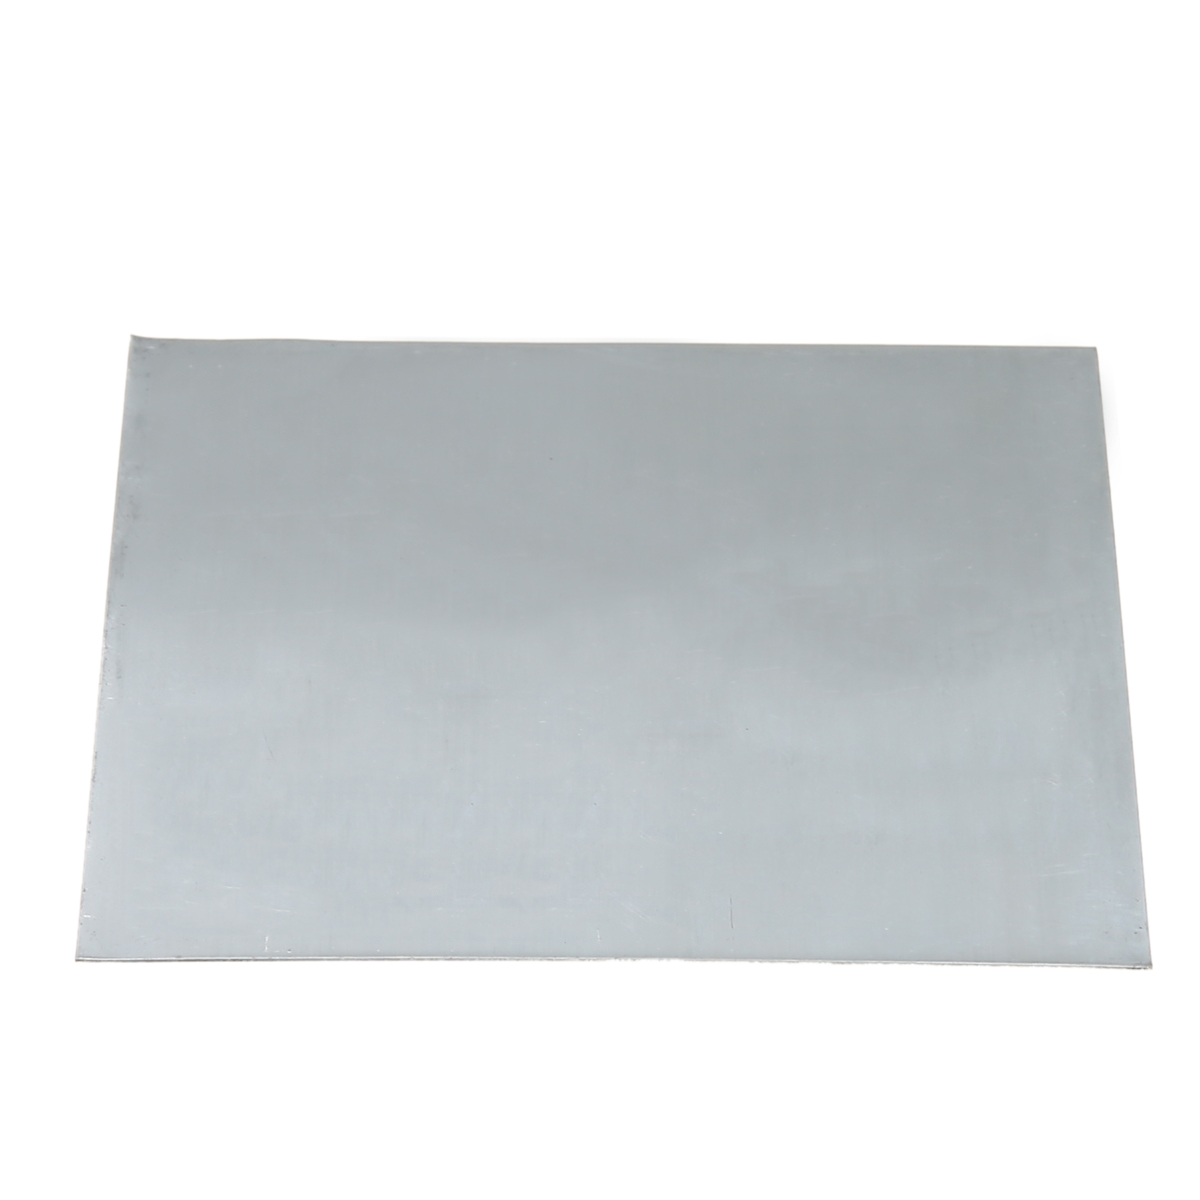 1Pcs Zinc Plate 99 9 Pure Zinc Zn Sheet Plate 100mmx100mmx0 2mm For Science Lab Accessories in Tool Parts from Tools